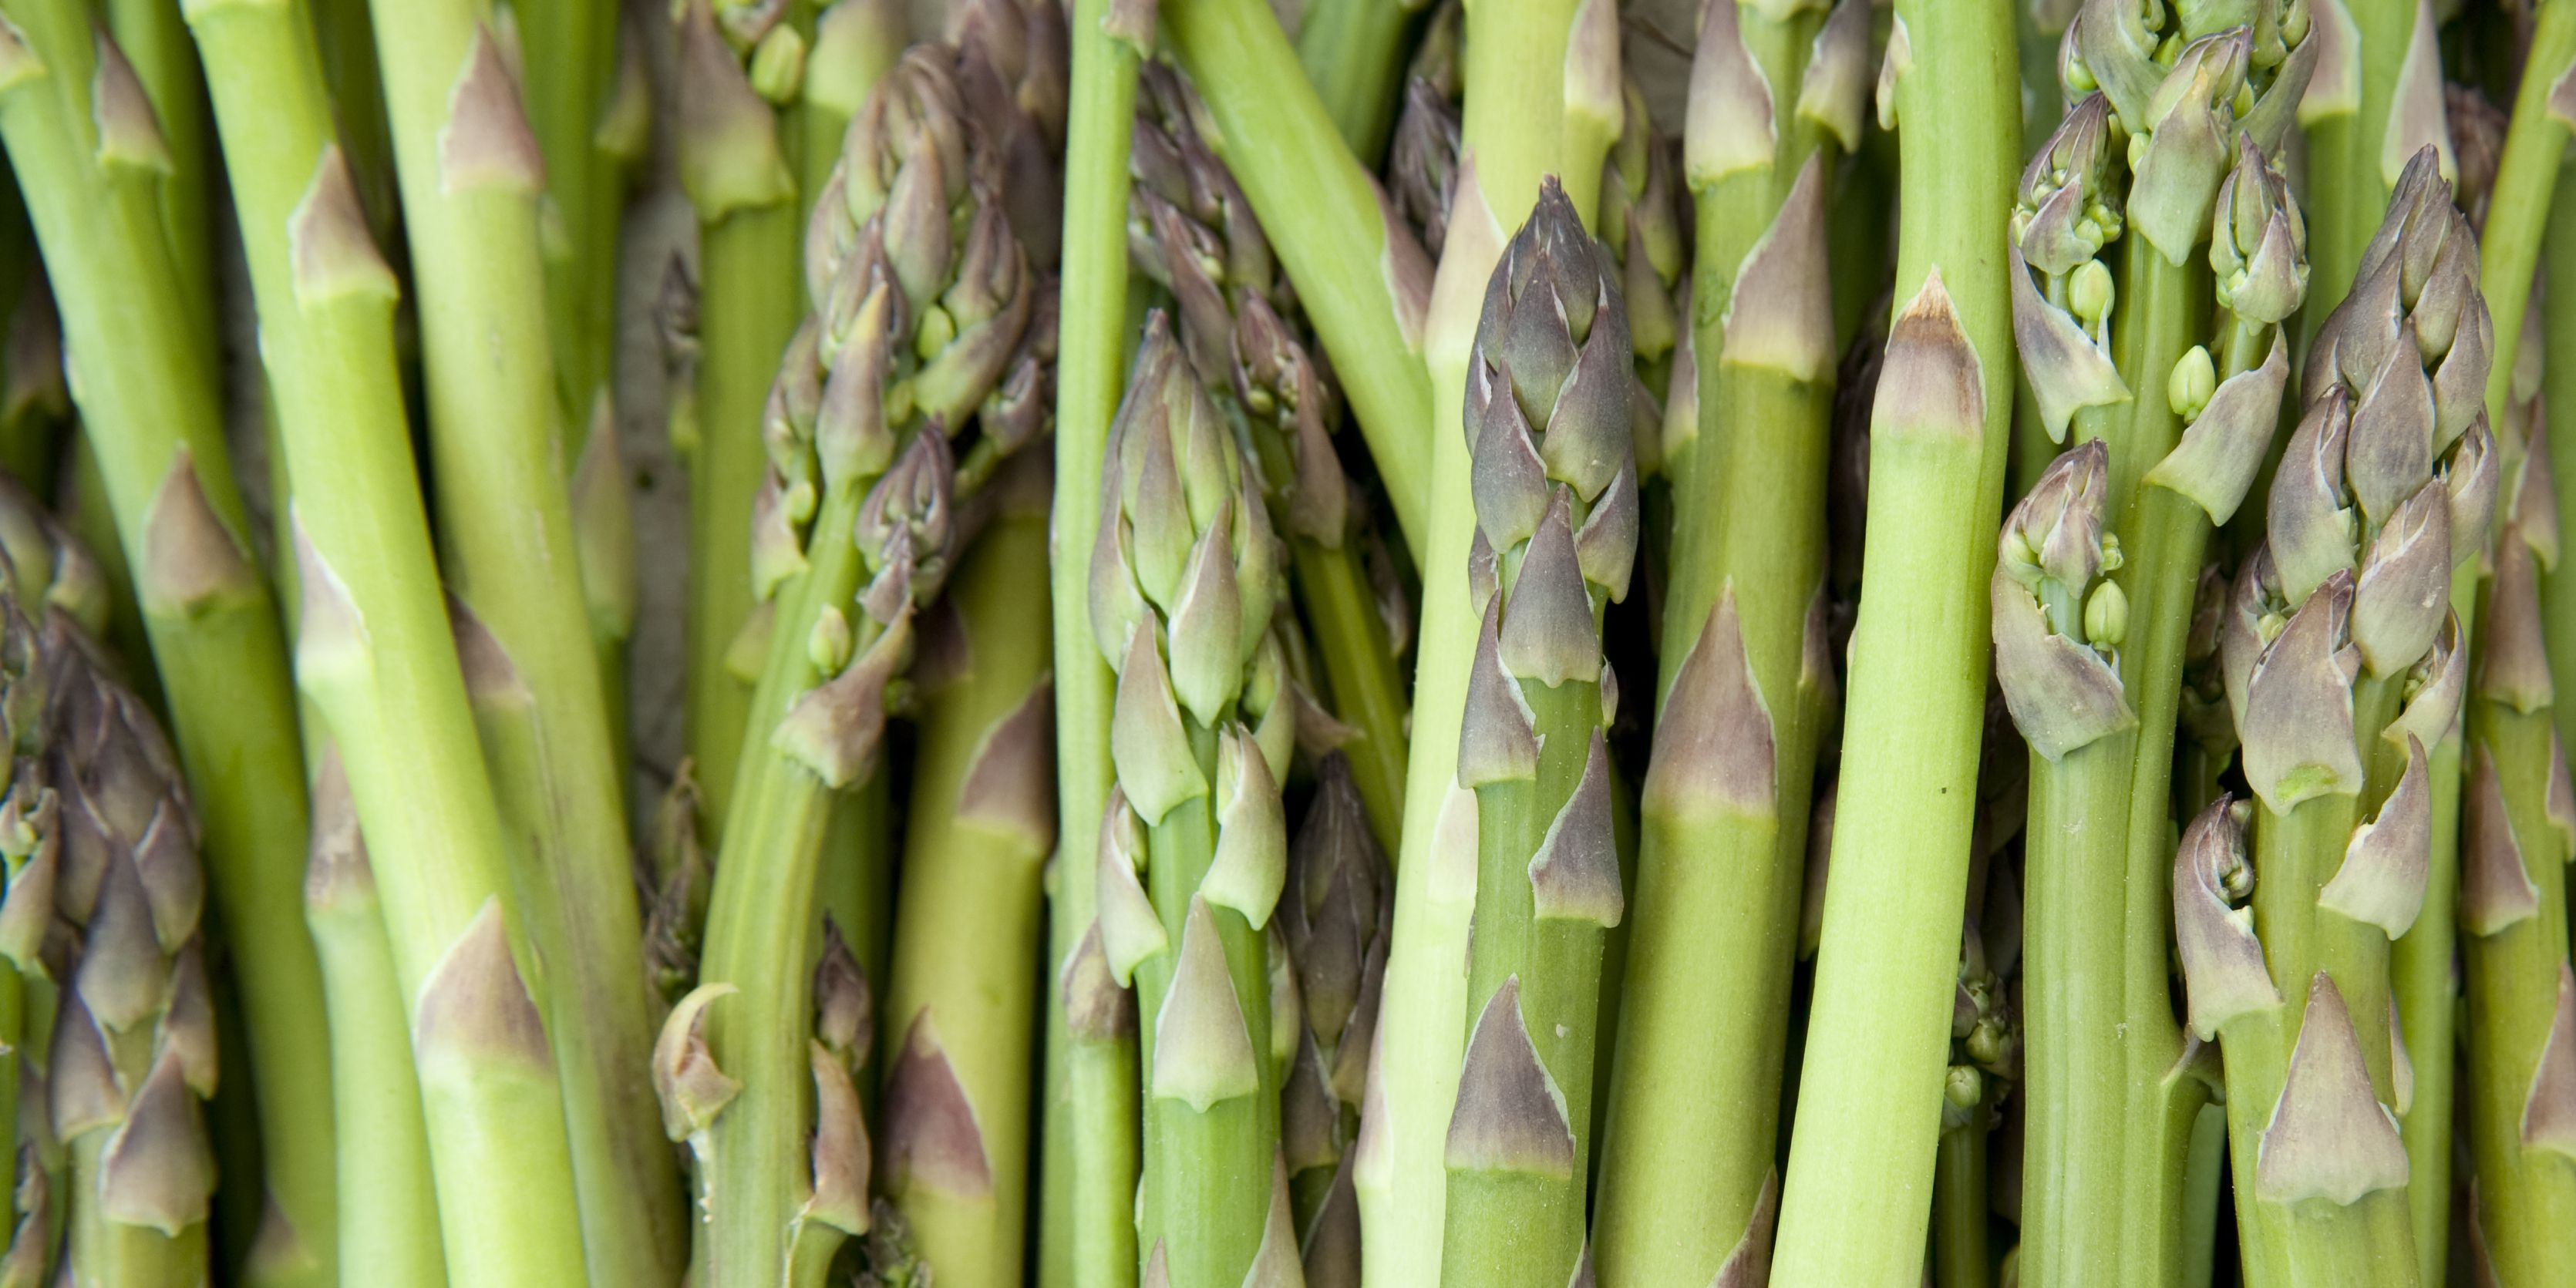 How to Grow Garden-Fresh Asparagus